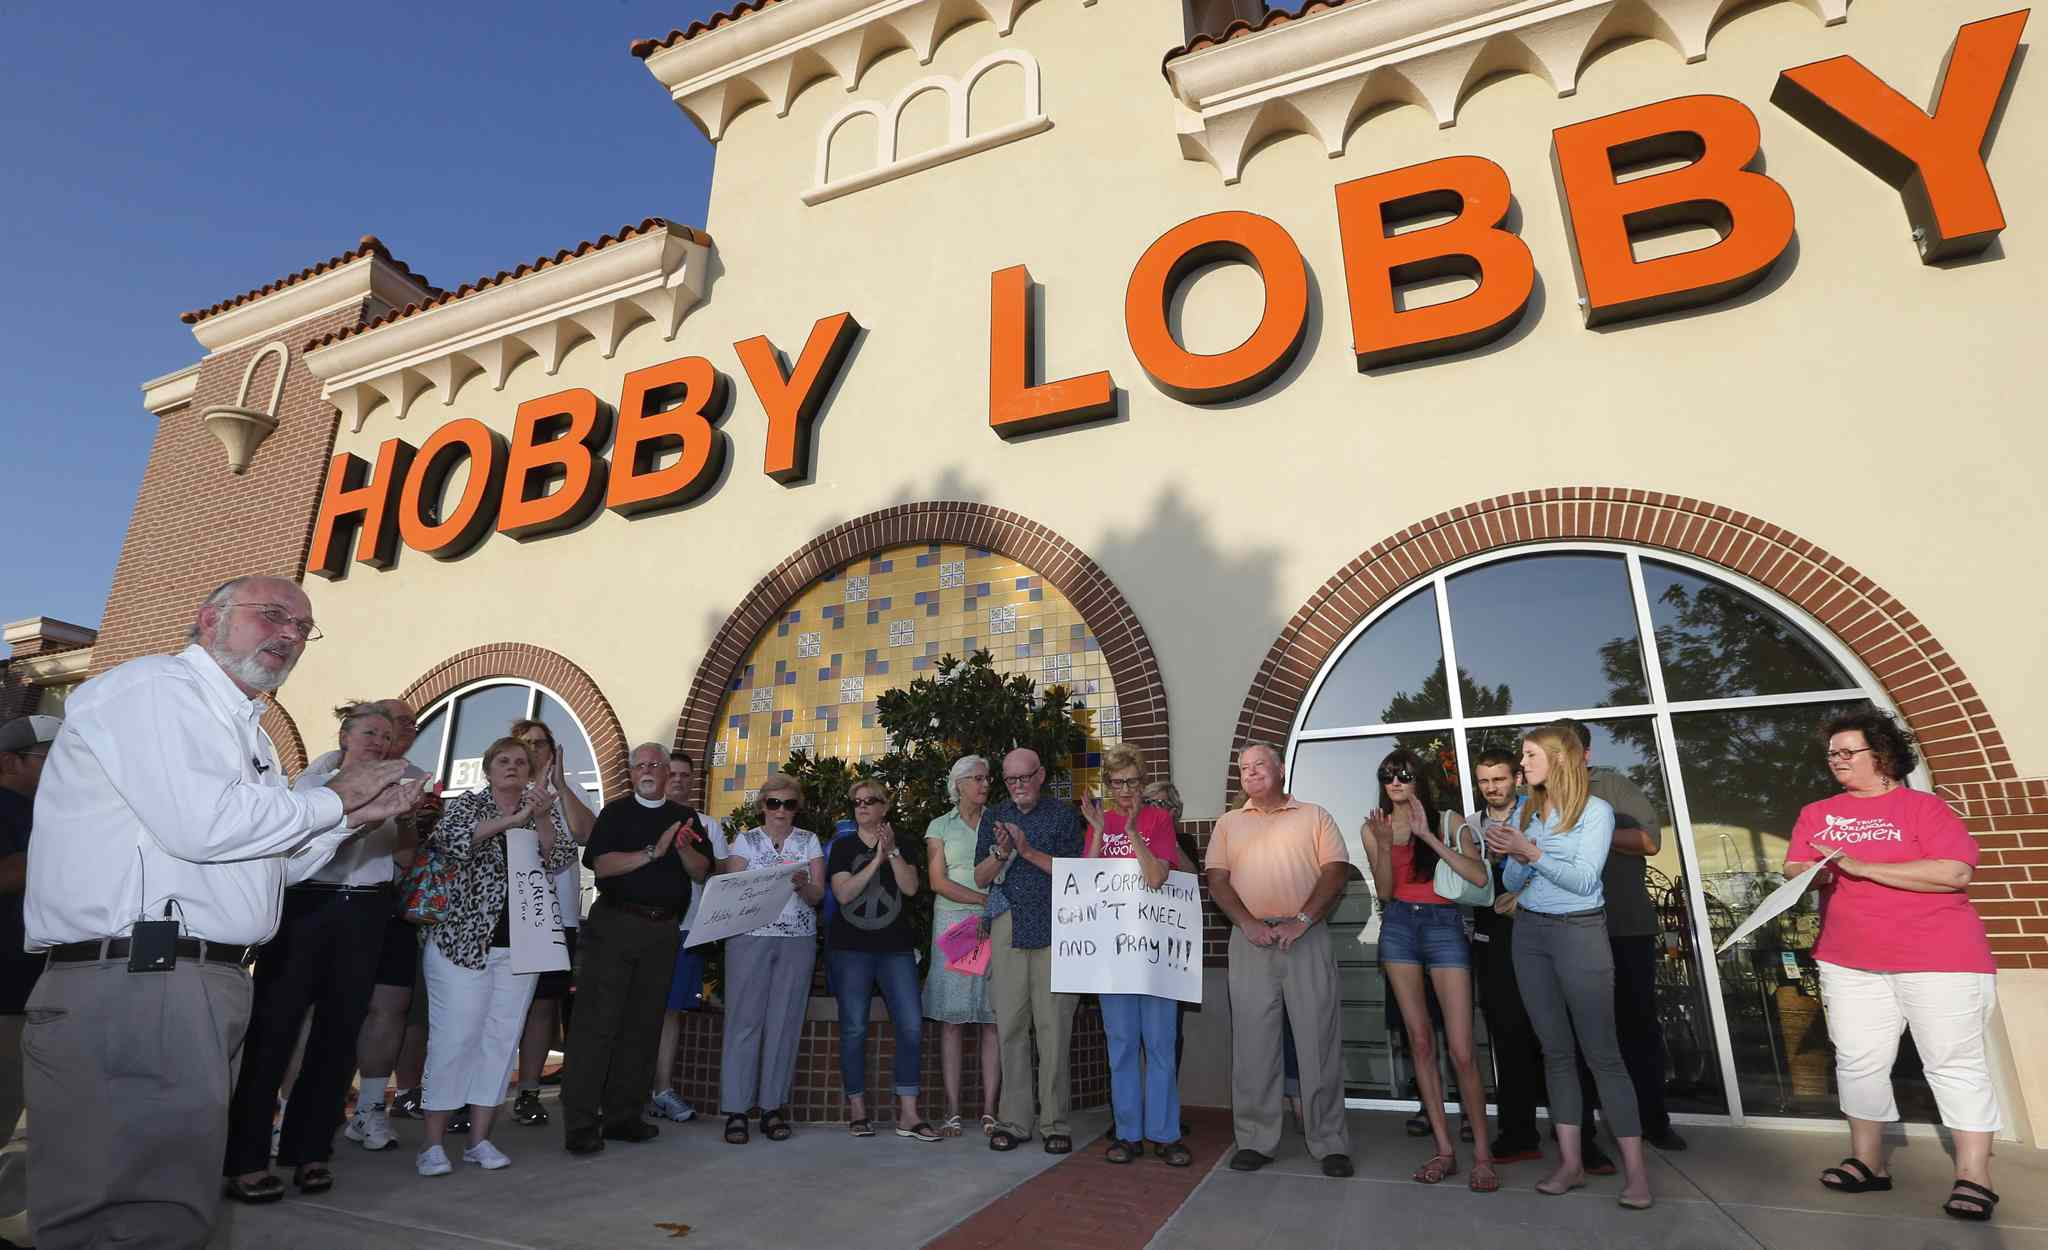 Rev. Bruce Prescott, left, applauds during a vigil outside a Hobby Lobby store in Edmond, Okla., Monday, June 30, 2014, in reaction to the Supreme Court's decision that some companies like the Oklahoma-based Hobby Lobby chain of arts-and-craft stores can avoid the contraceptives requirement in President Barack Obama's health care overhaul, if they have religious objections.